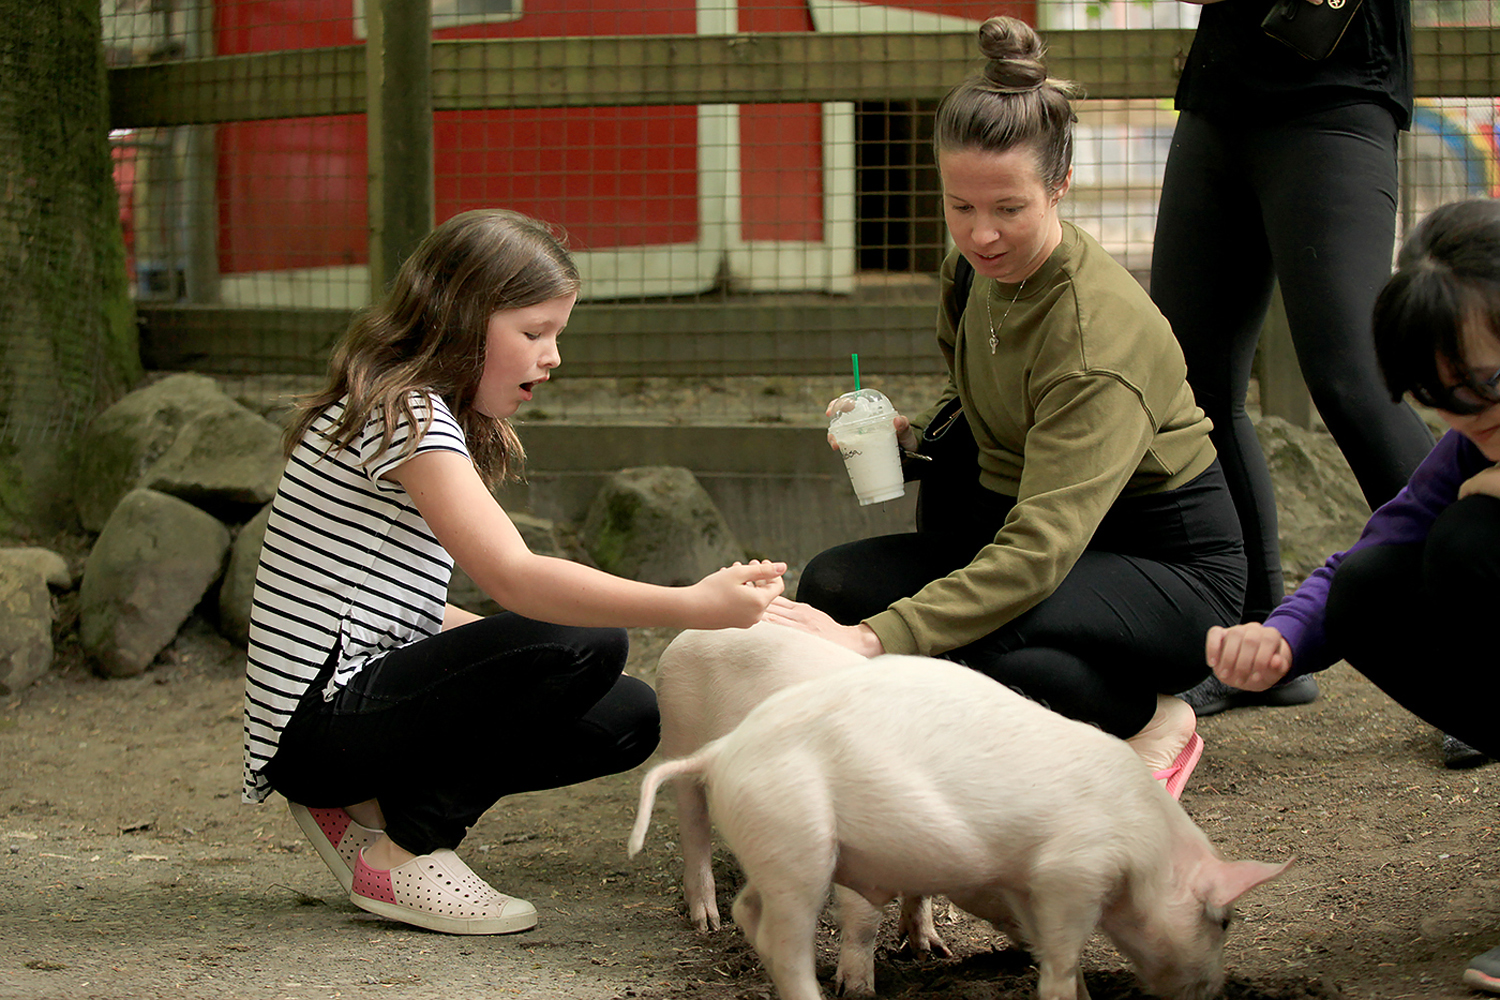 Queen S Park Petting Farm Opens For The Season In New West Photo Gallery New West Record